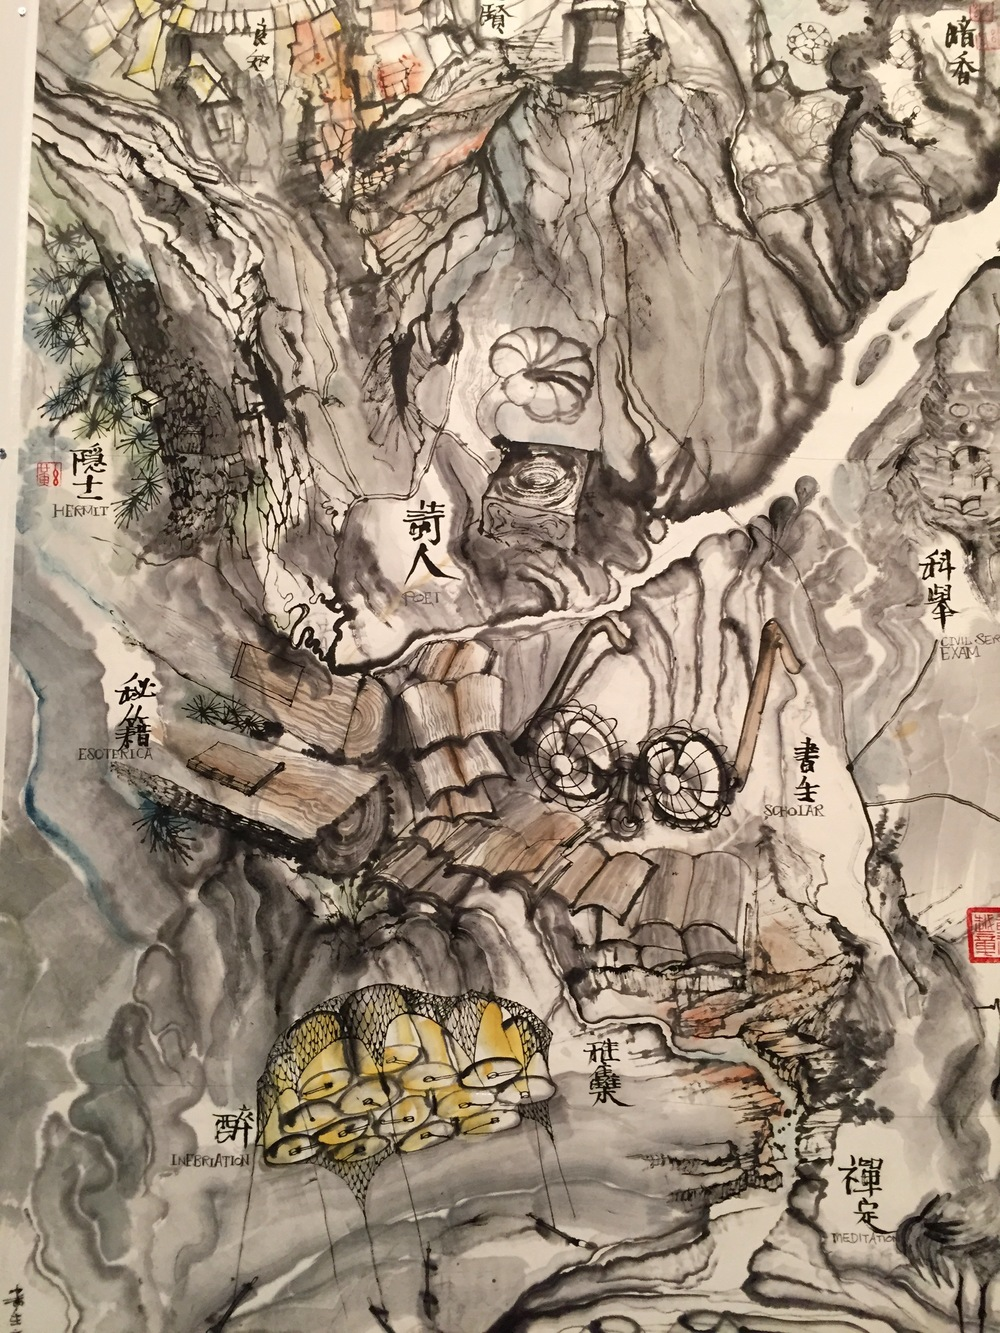 Qui Zhijie reimagining Chinese landscape tradition with panel after panel of a room-size, meandering life-story-as-river